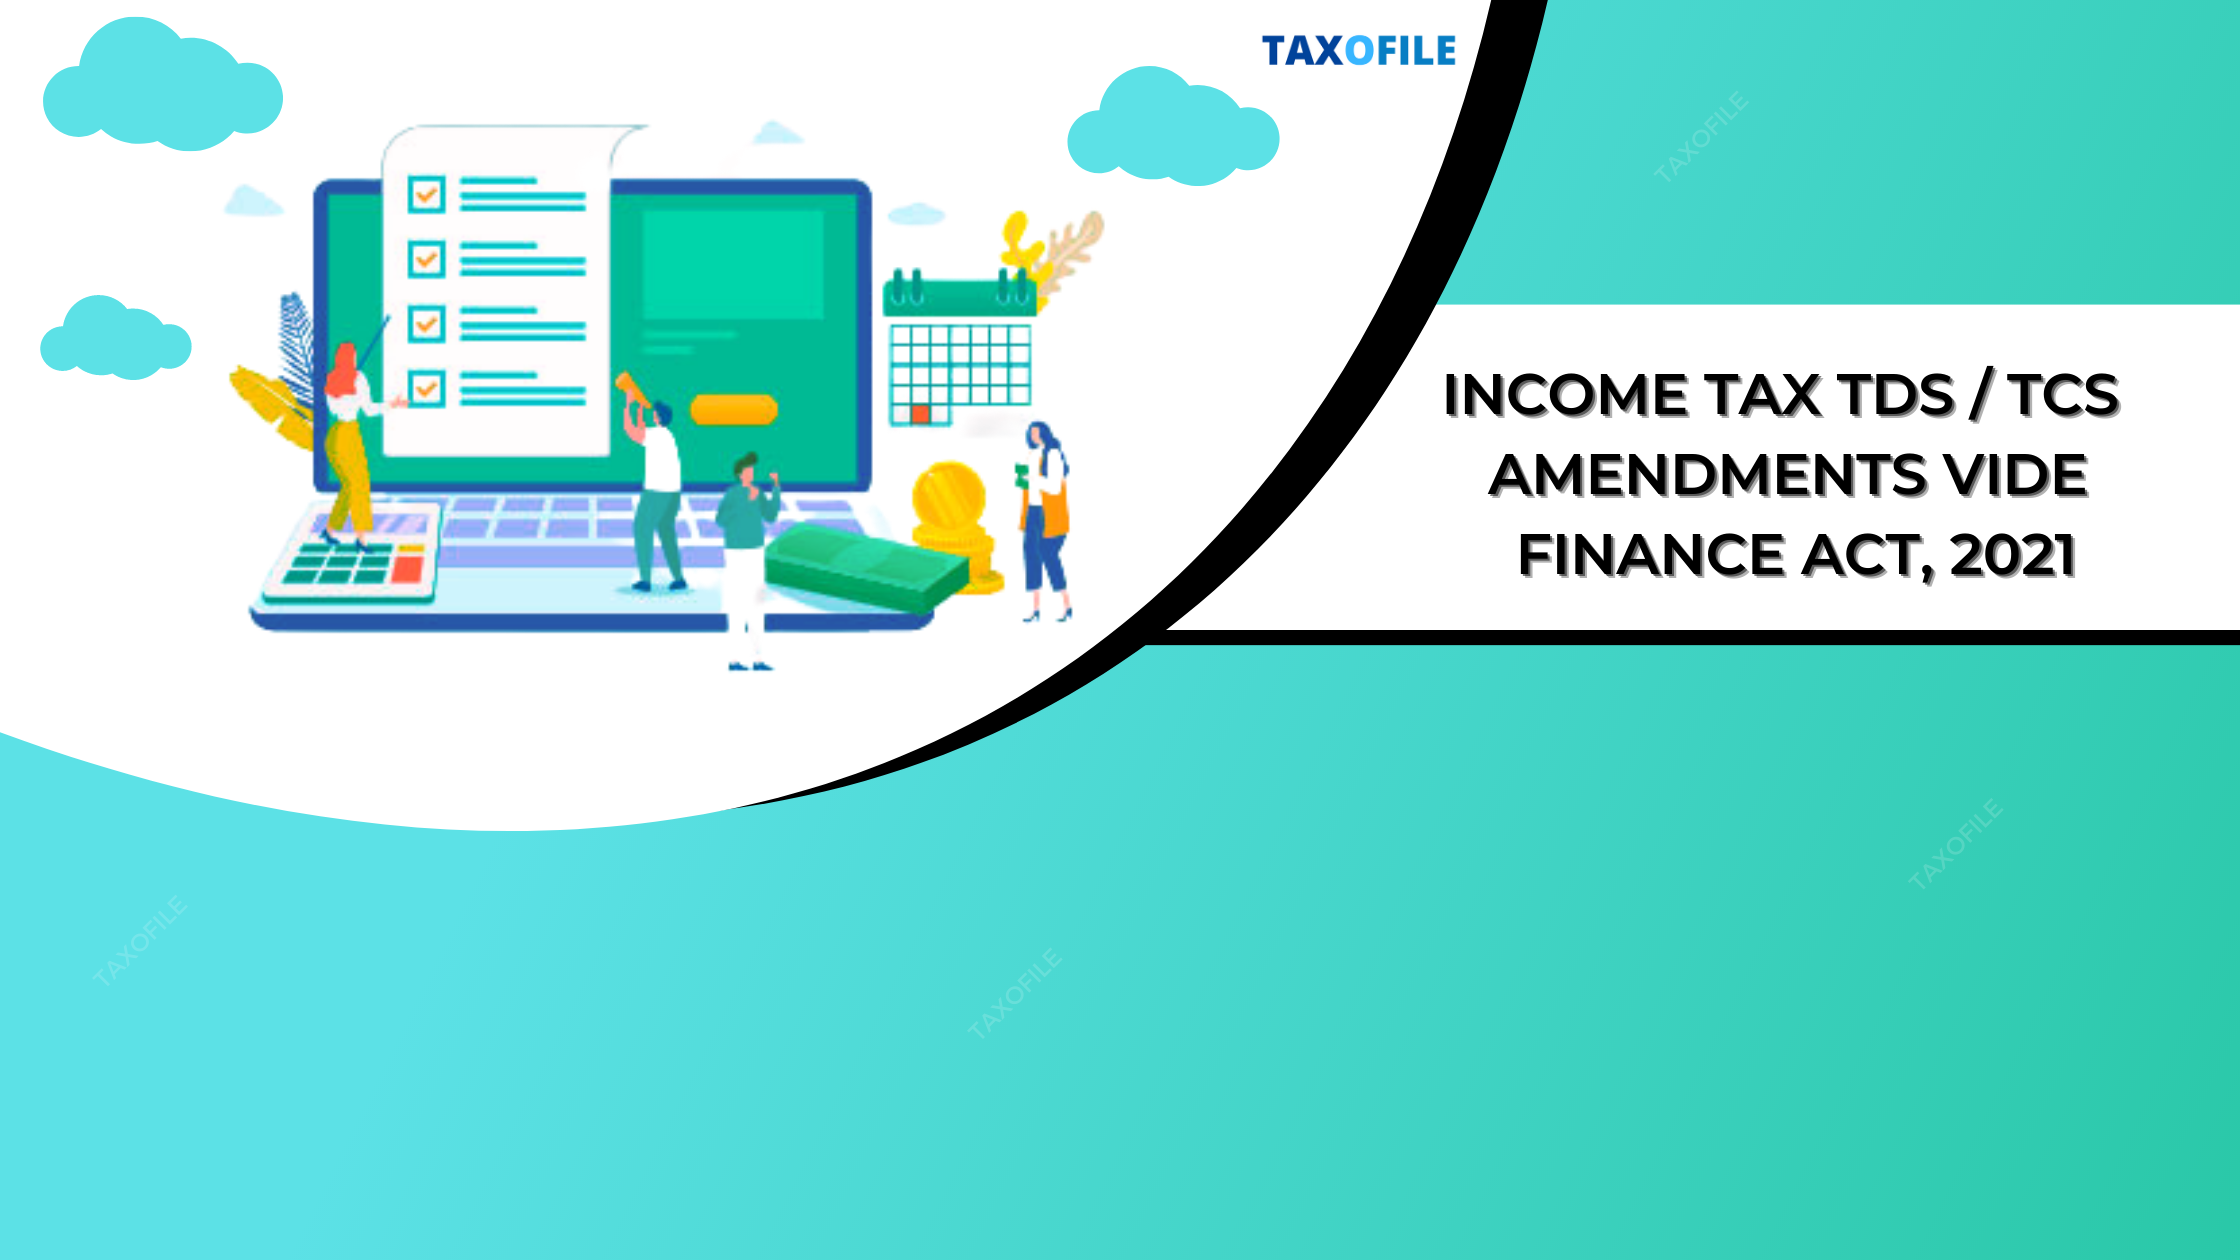 Income Tax TDS / TCS amendments vide Finance Act, 2021